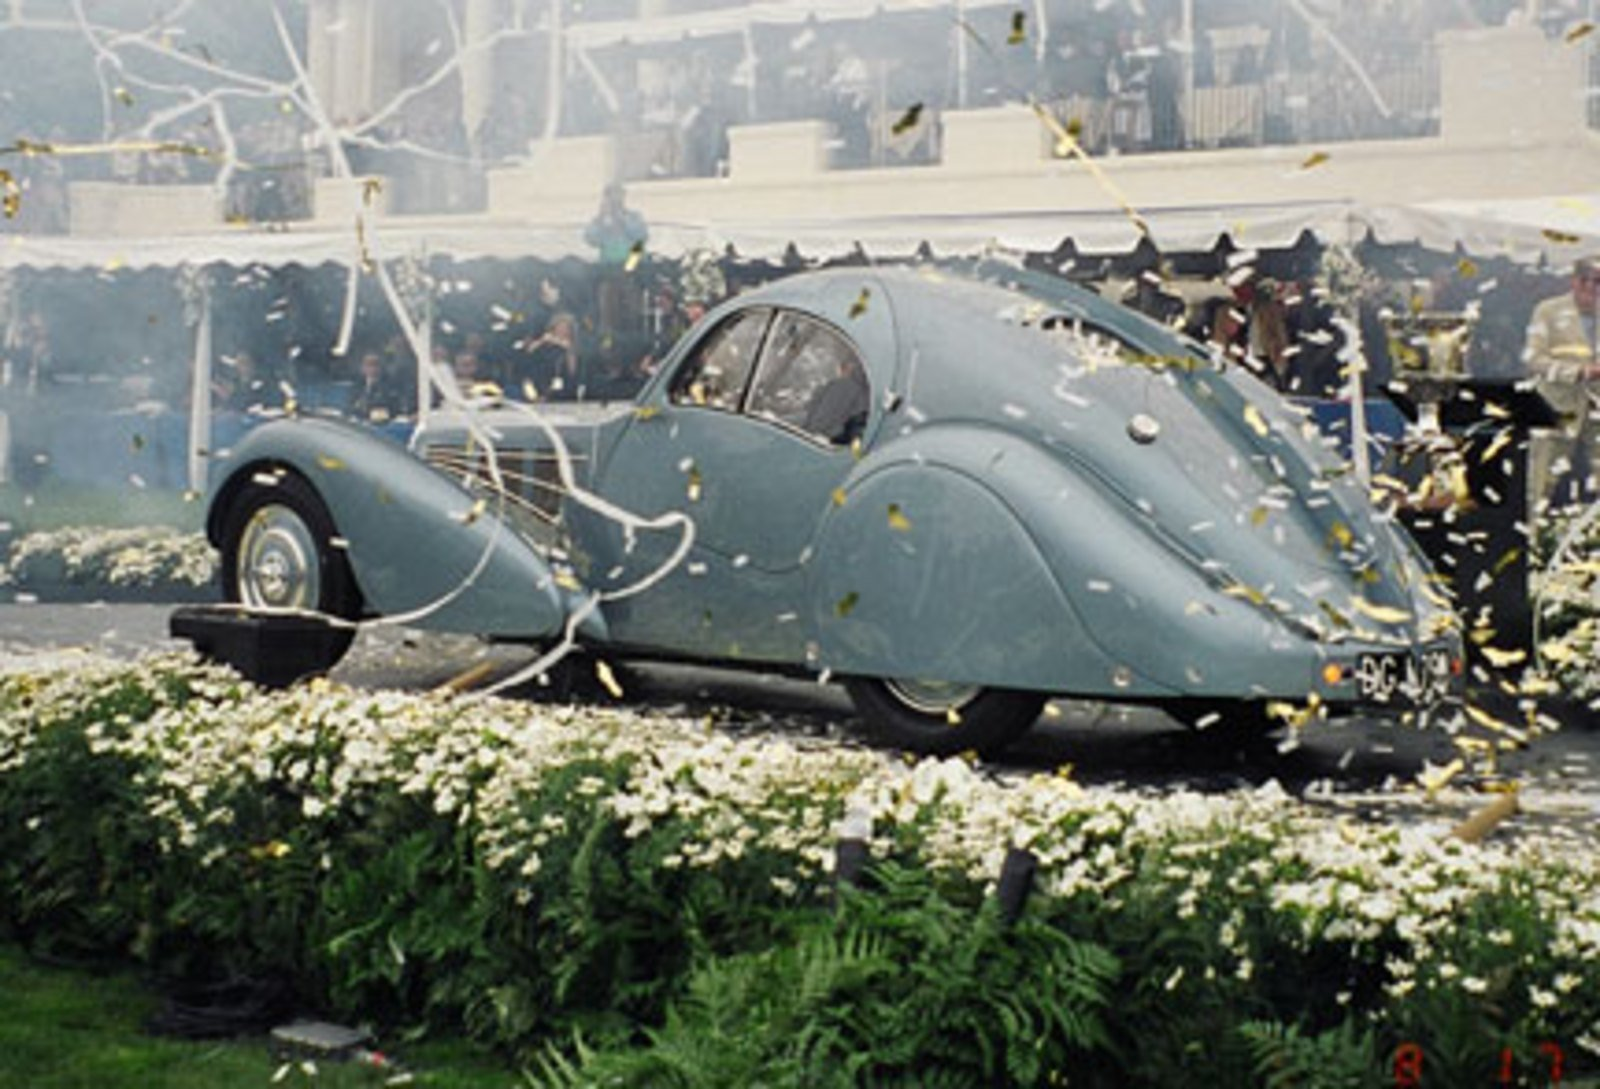 1936 Bugatti Type 57SC Atlantic Is The World's Most Expensive Car News - Top Speed